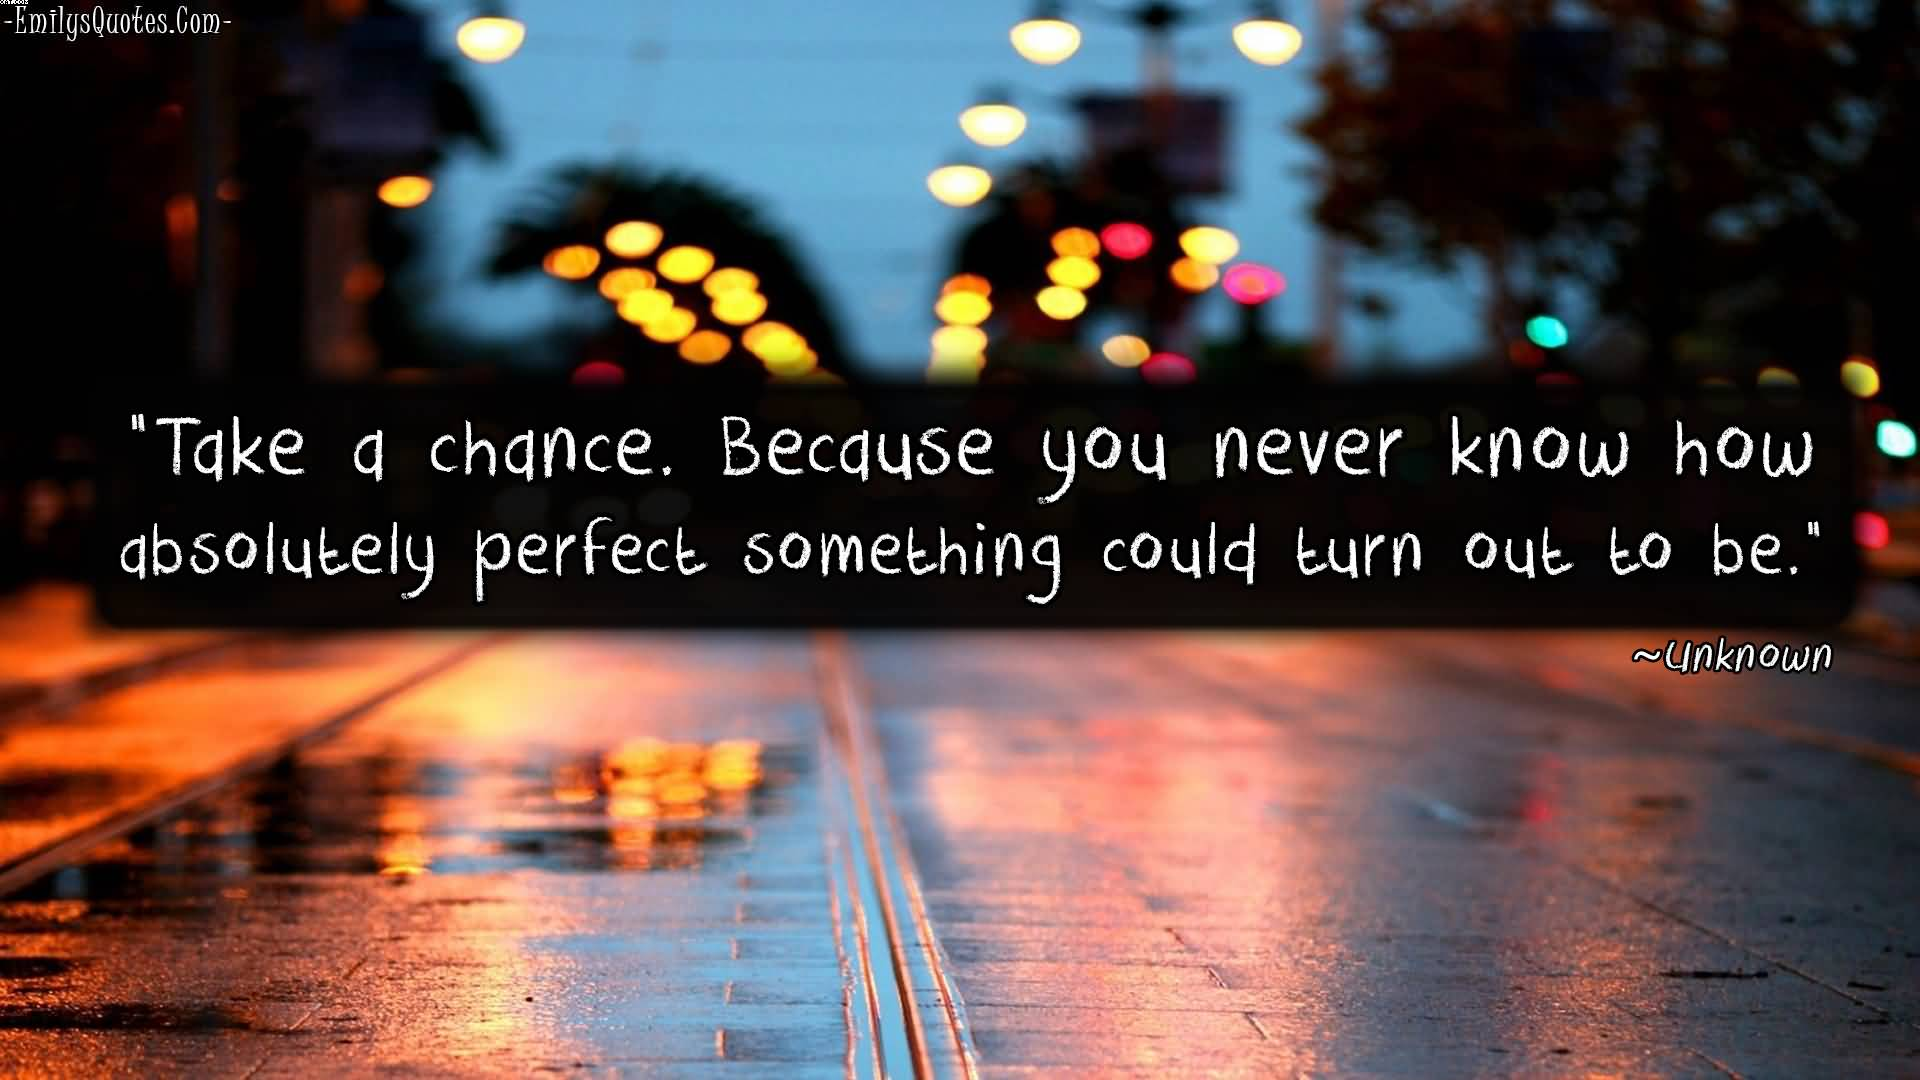 Take A Chance. Because You Never Know How Absolutely Perfect Something